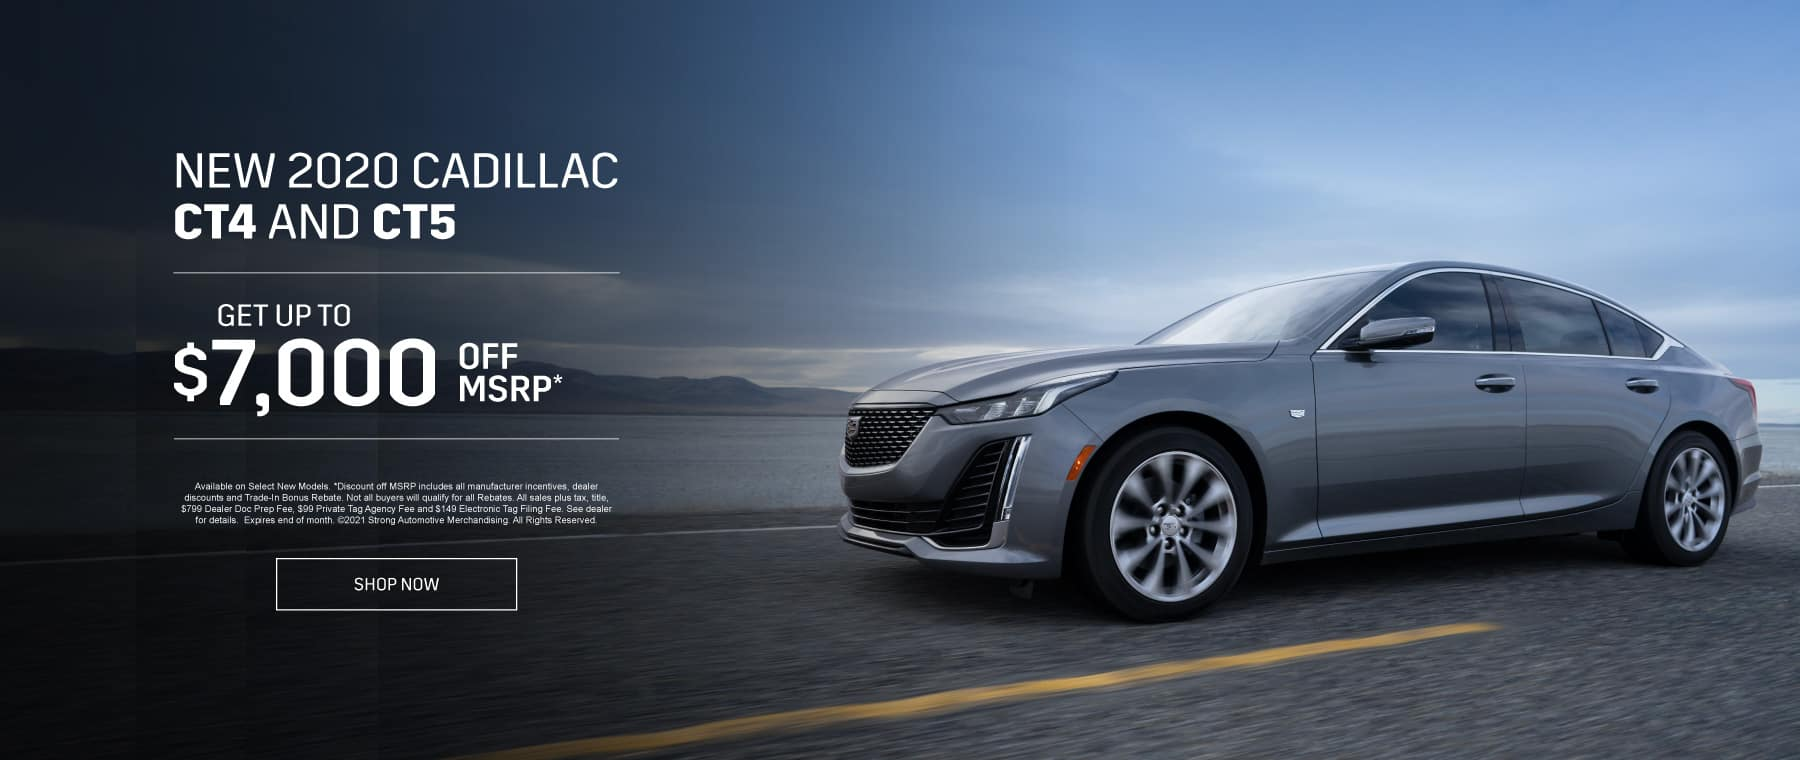 New 2020 Cadillac CT4 and CT5 - Get up to $7000 off msrp - Shop Now